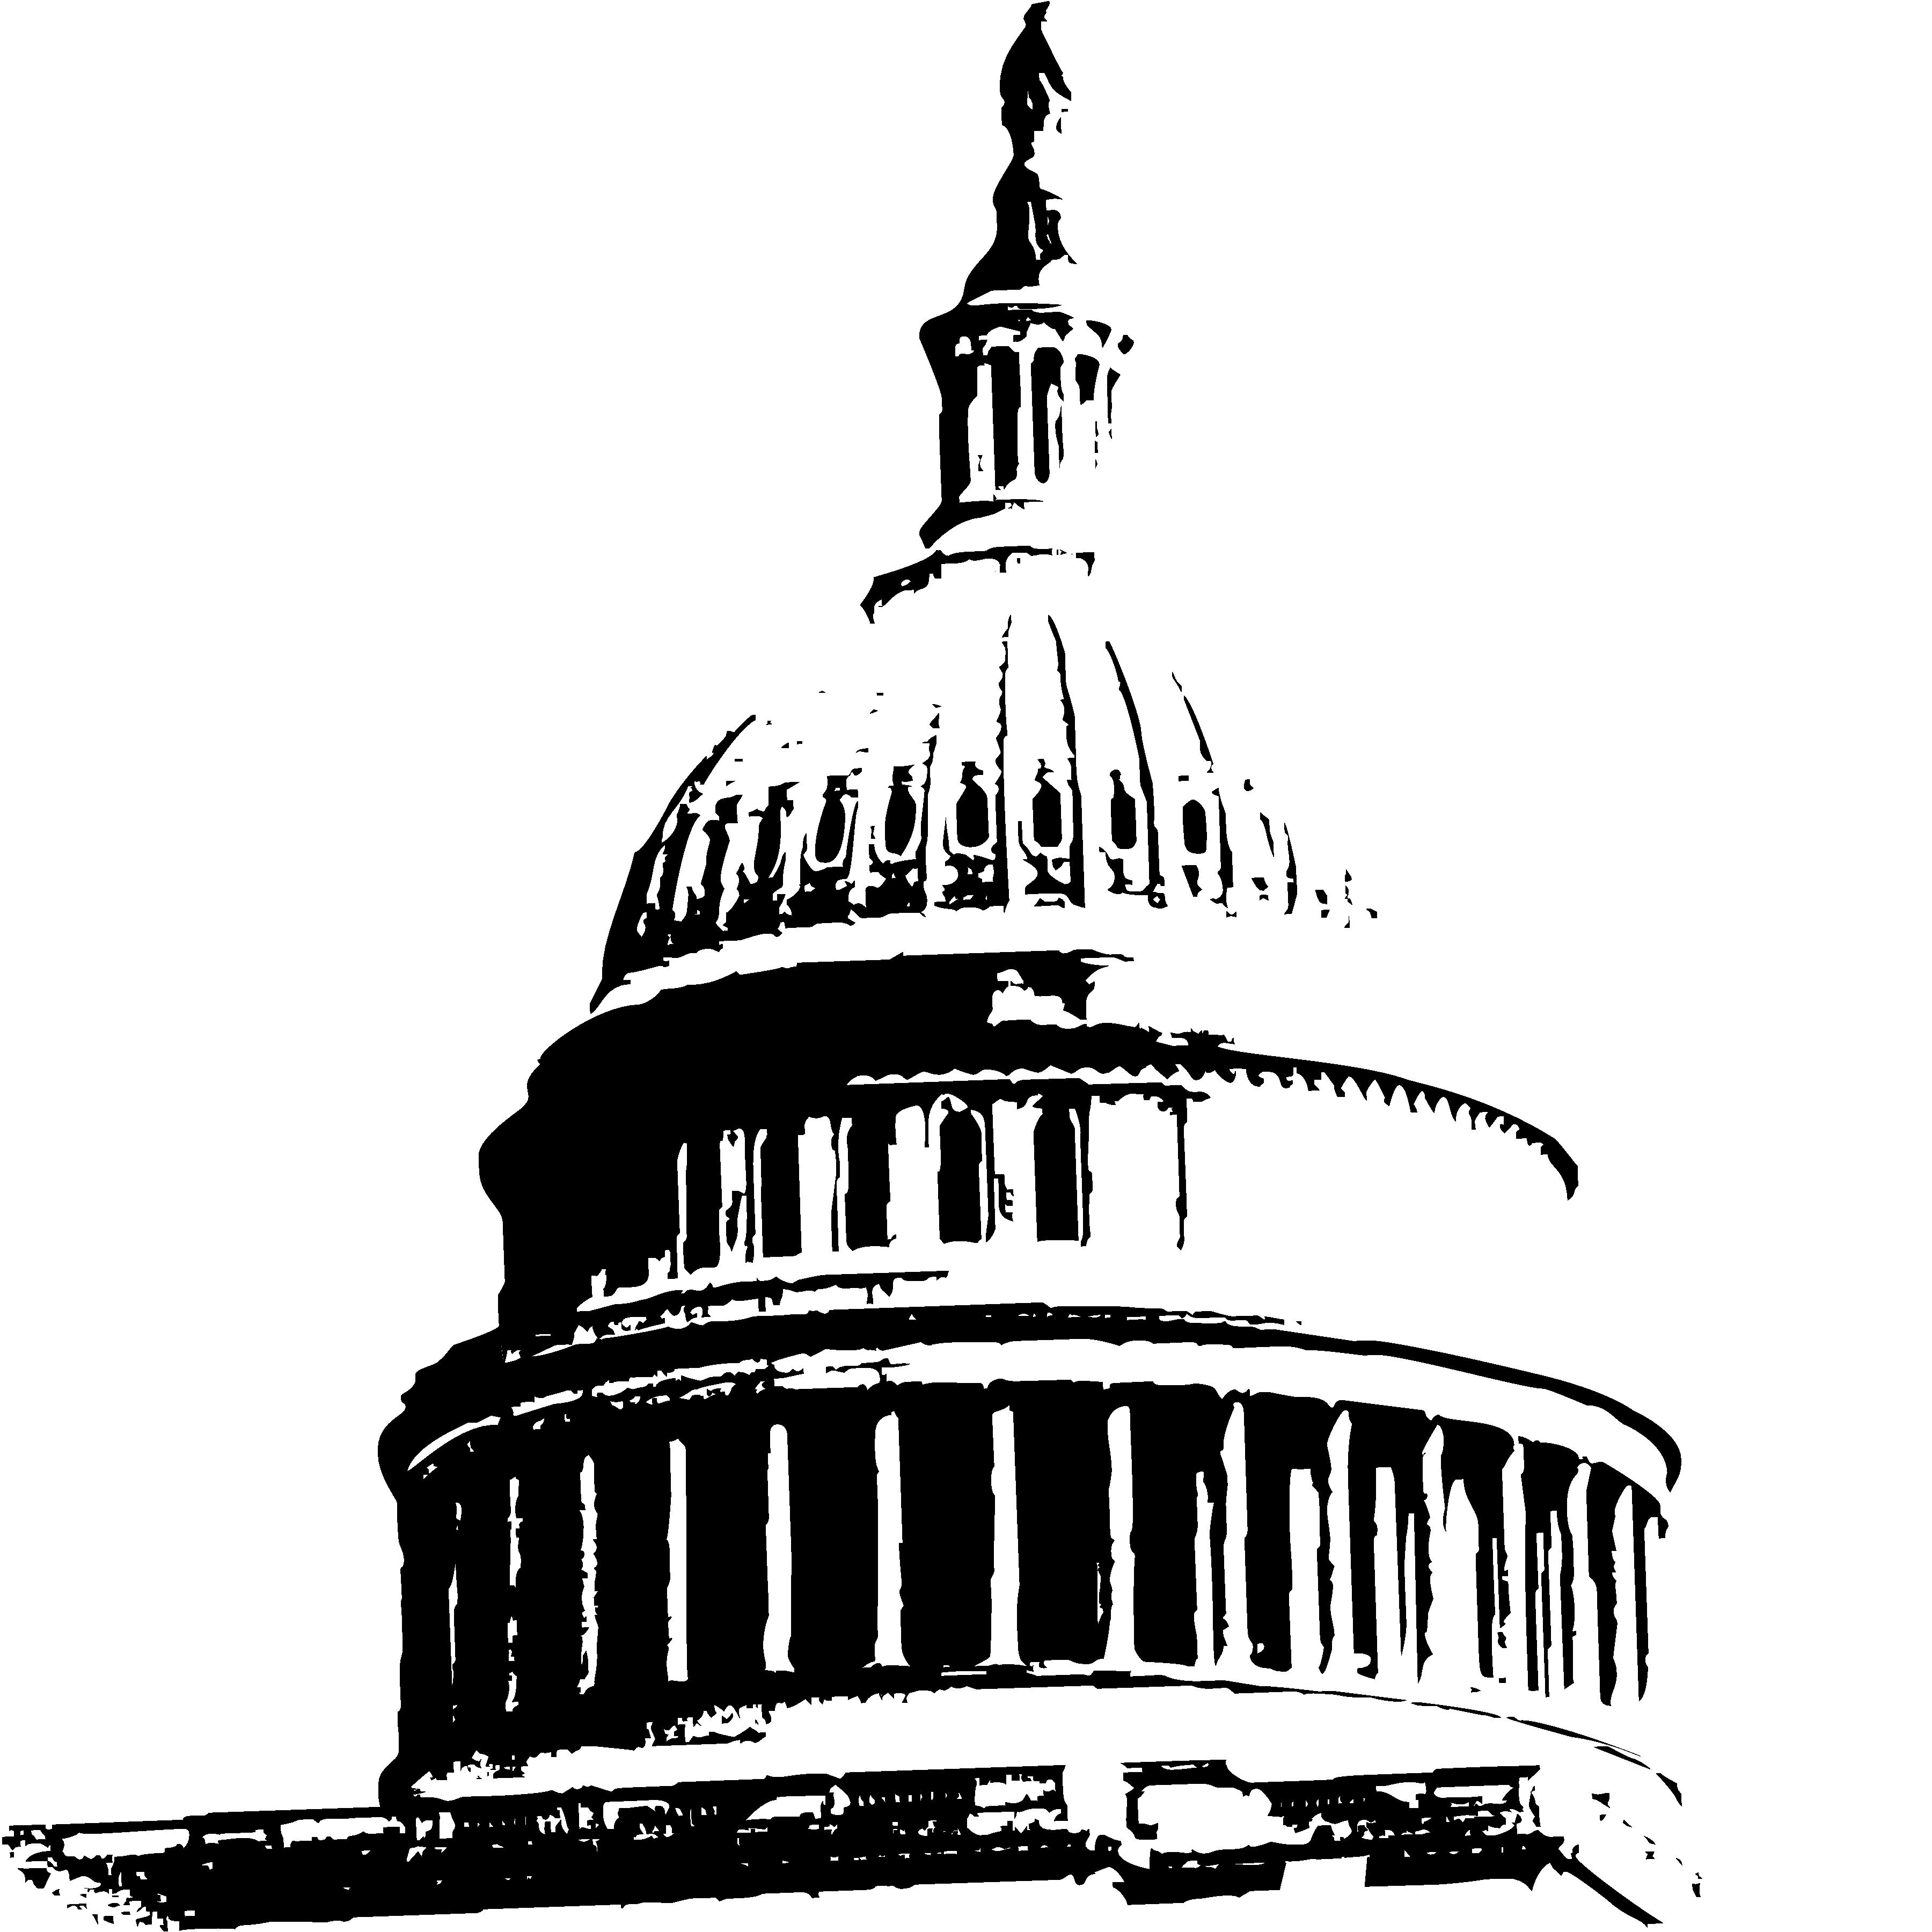 Clipart us capitol building jpg freeuse download Us capitol dome clipart - ClipartFest jpg freeuse download